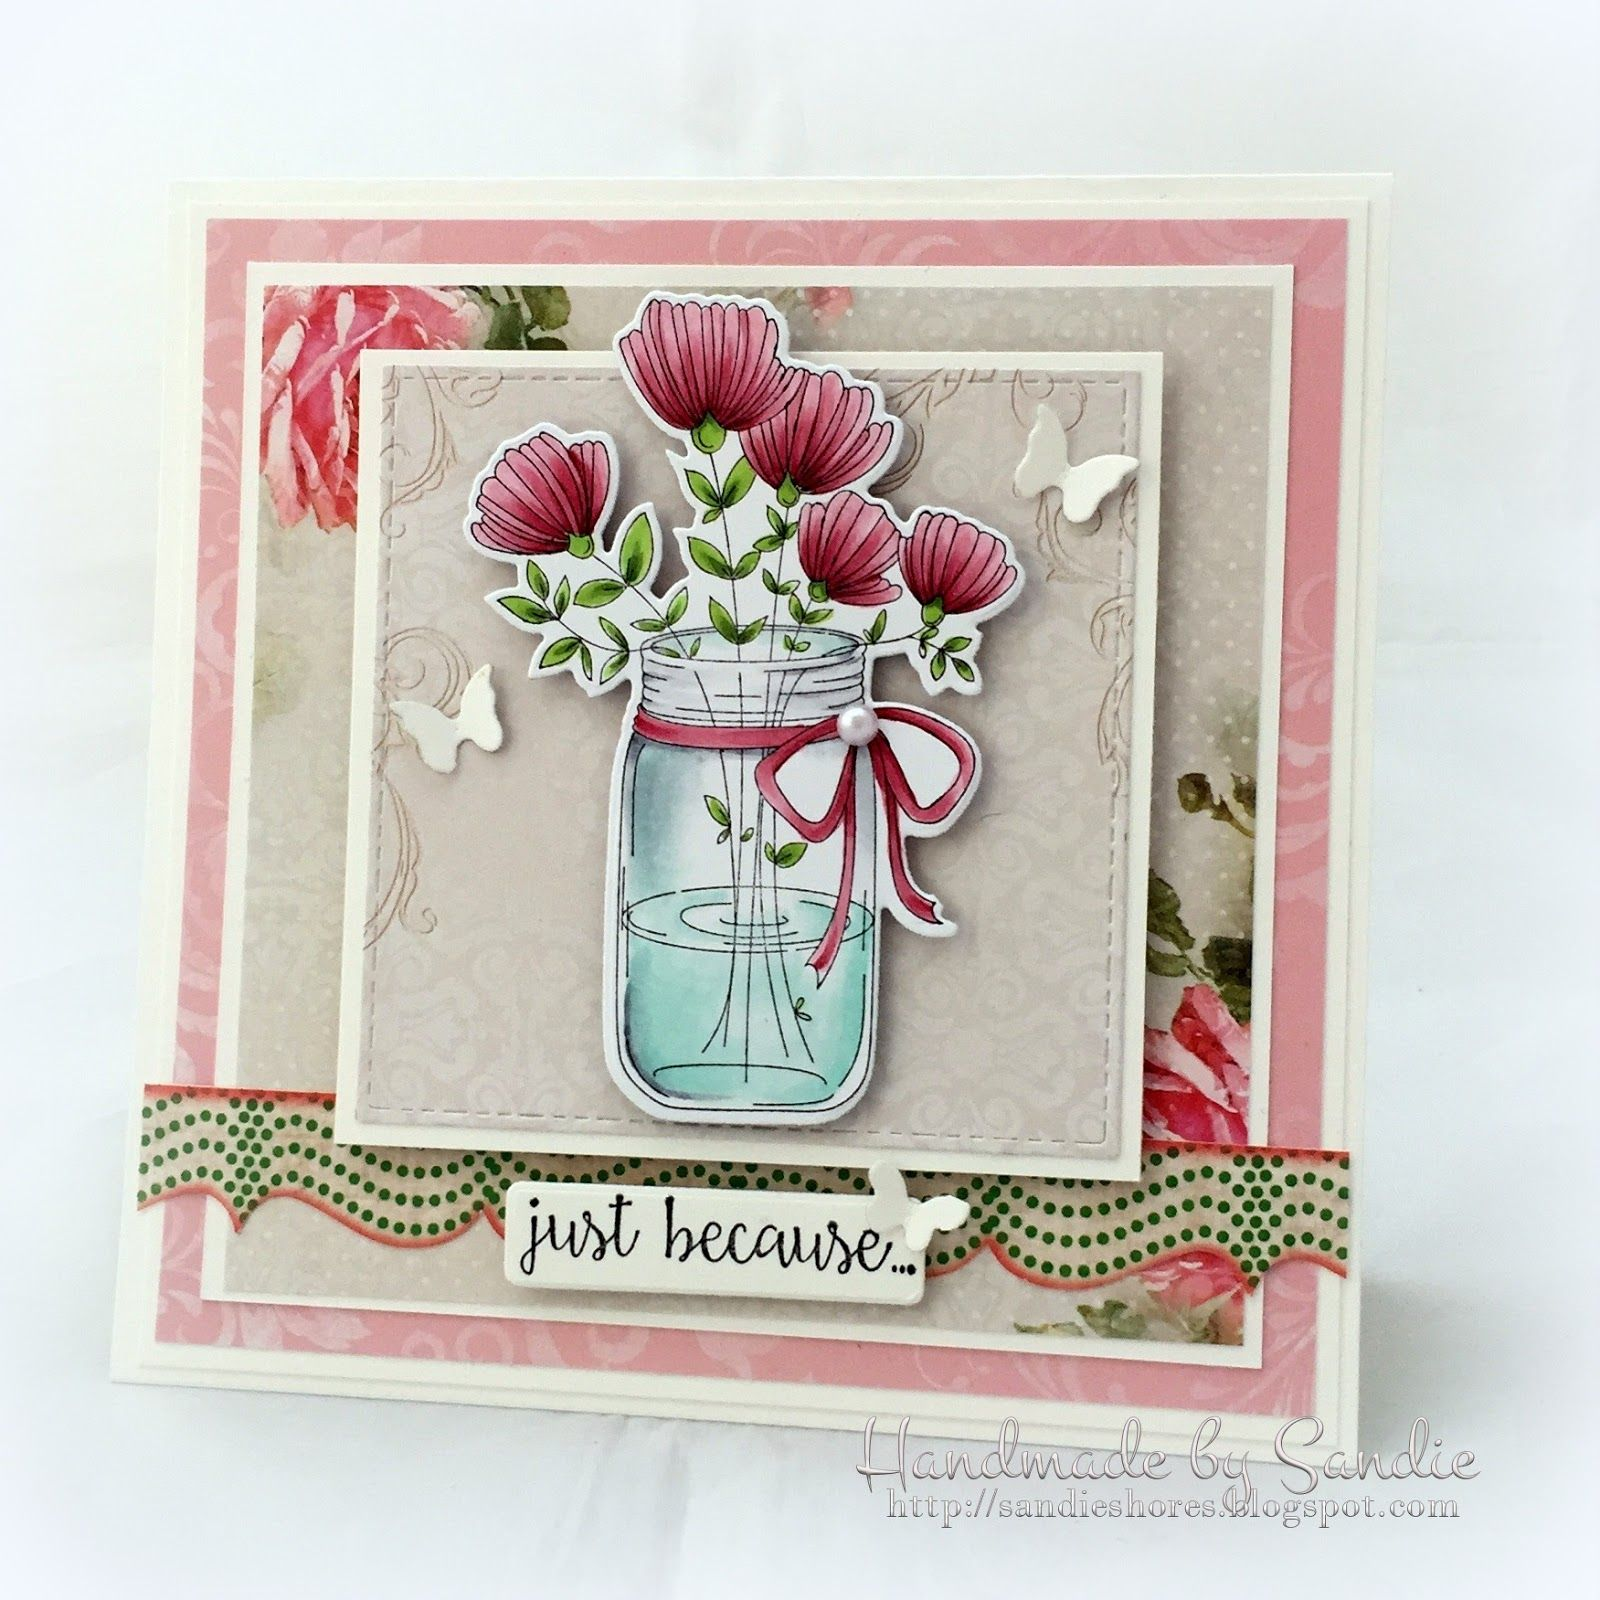 Itus time for another stamping bella bellariffic friday this week